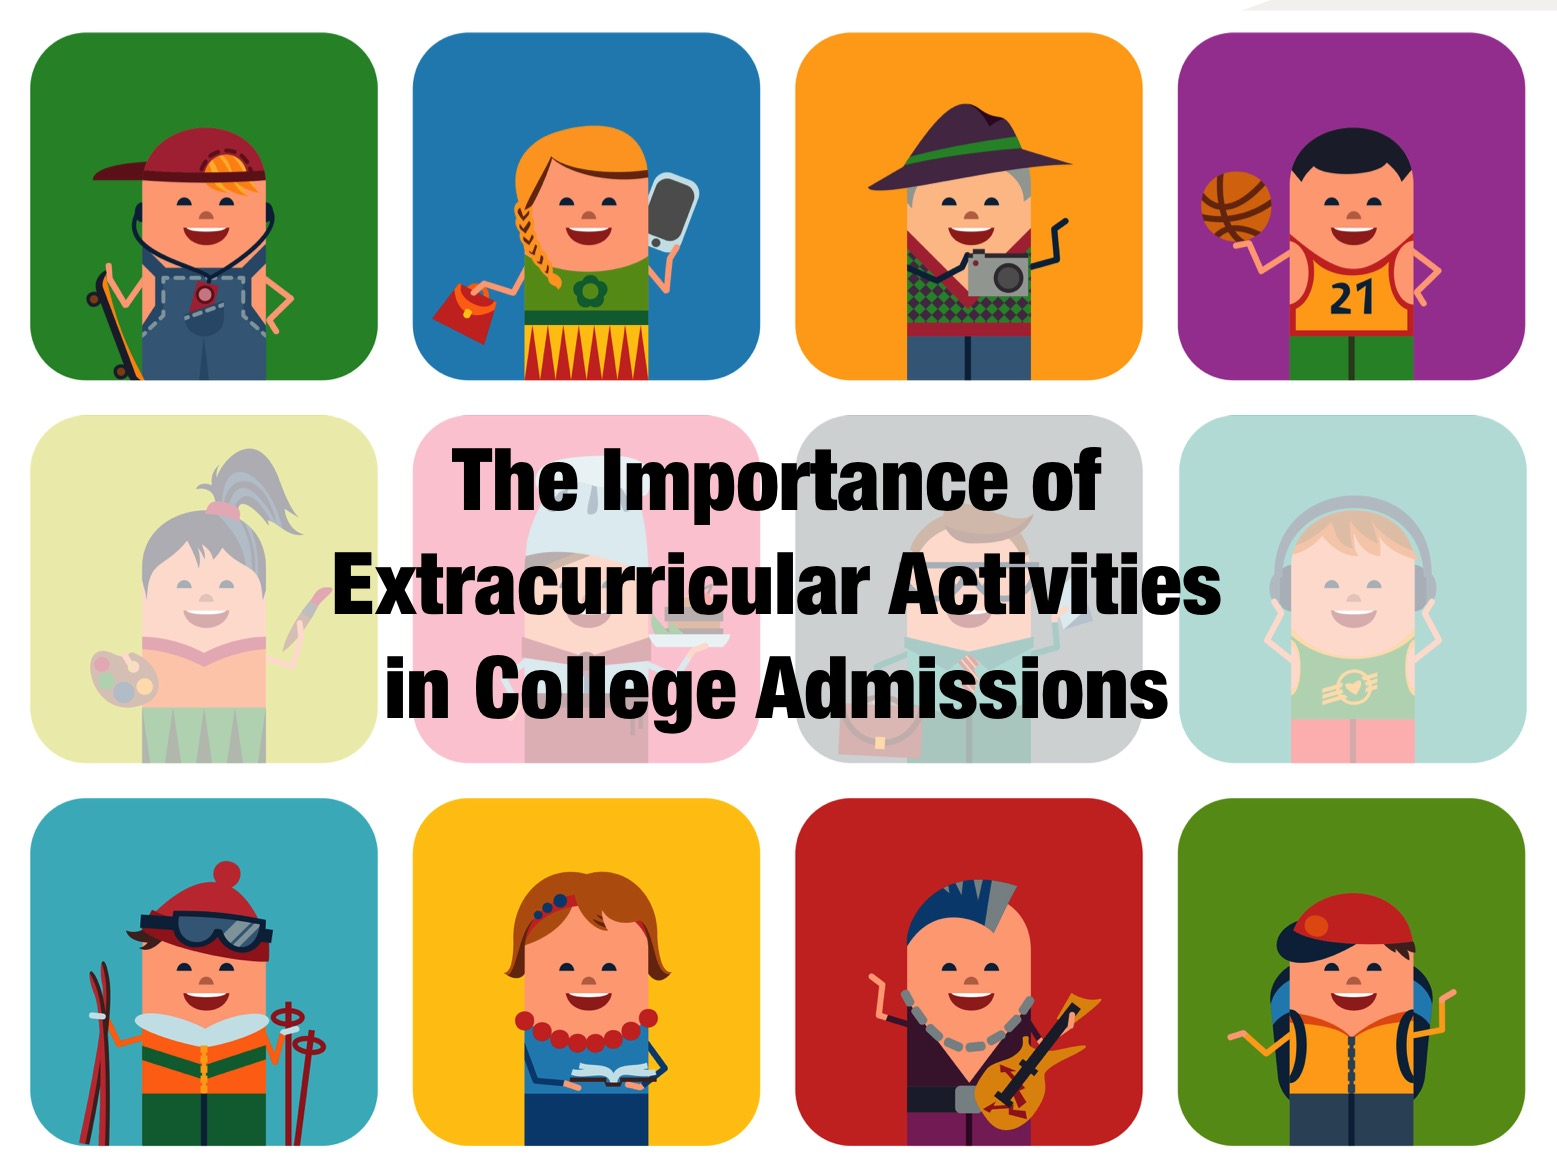 the importance of extracurricular activities Here at smartmom we've talked a lot about education for your little ones here's some information about the importance of extracurricular activities in school.